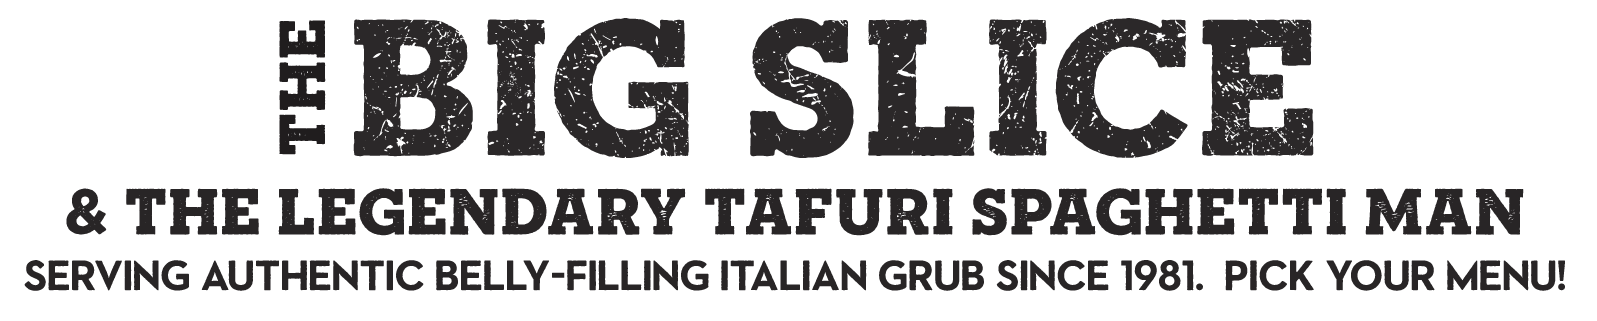 header which reads: The Big Slice & The Legendary Tafuri Spaghetti Man serving Authentic Italian  food since 1981. Pick your Big Slice Location.